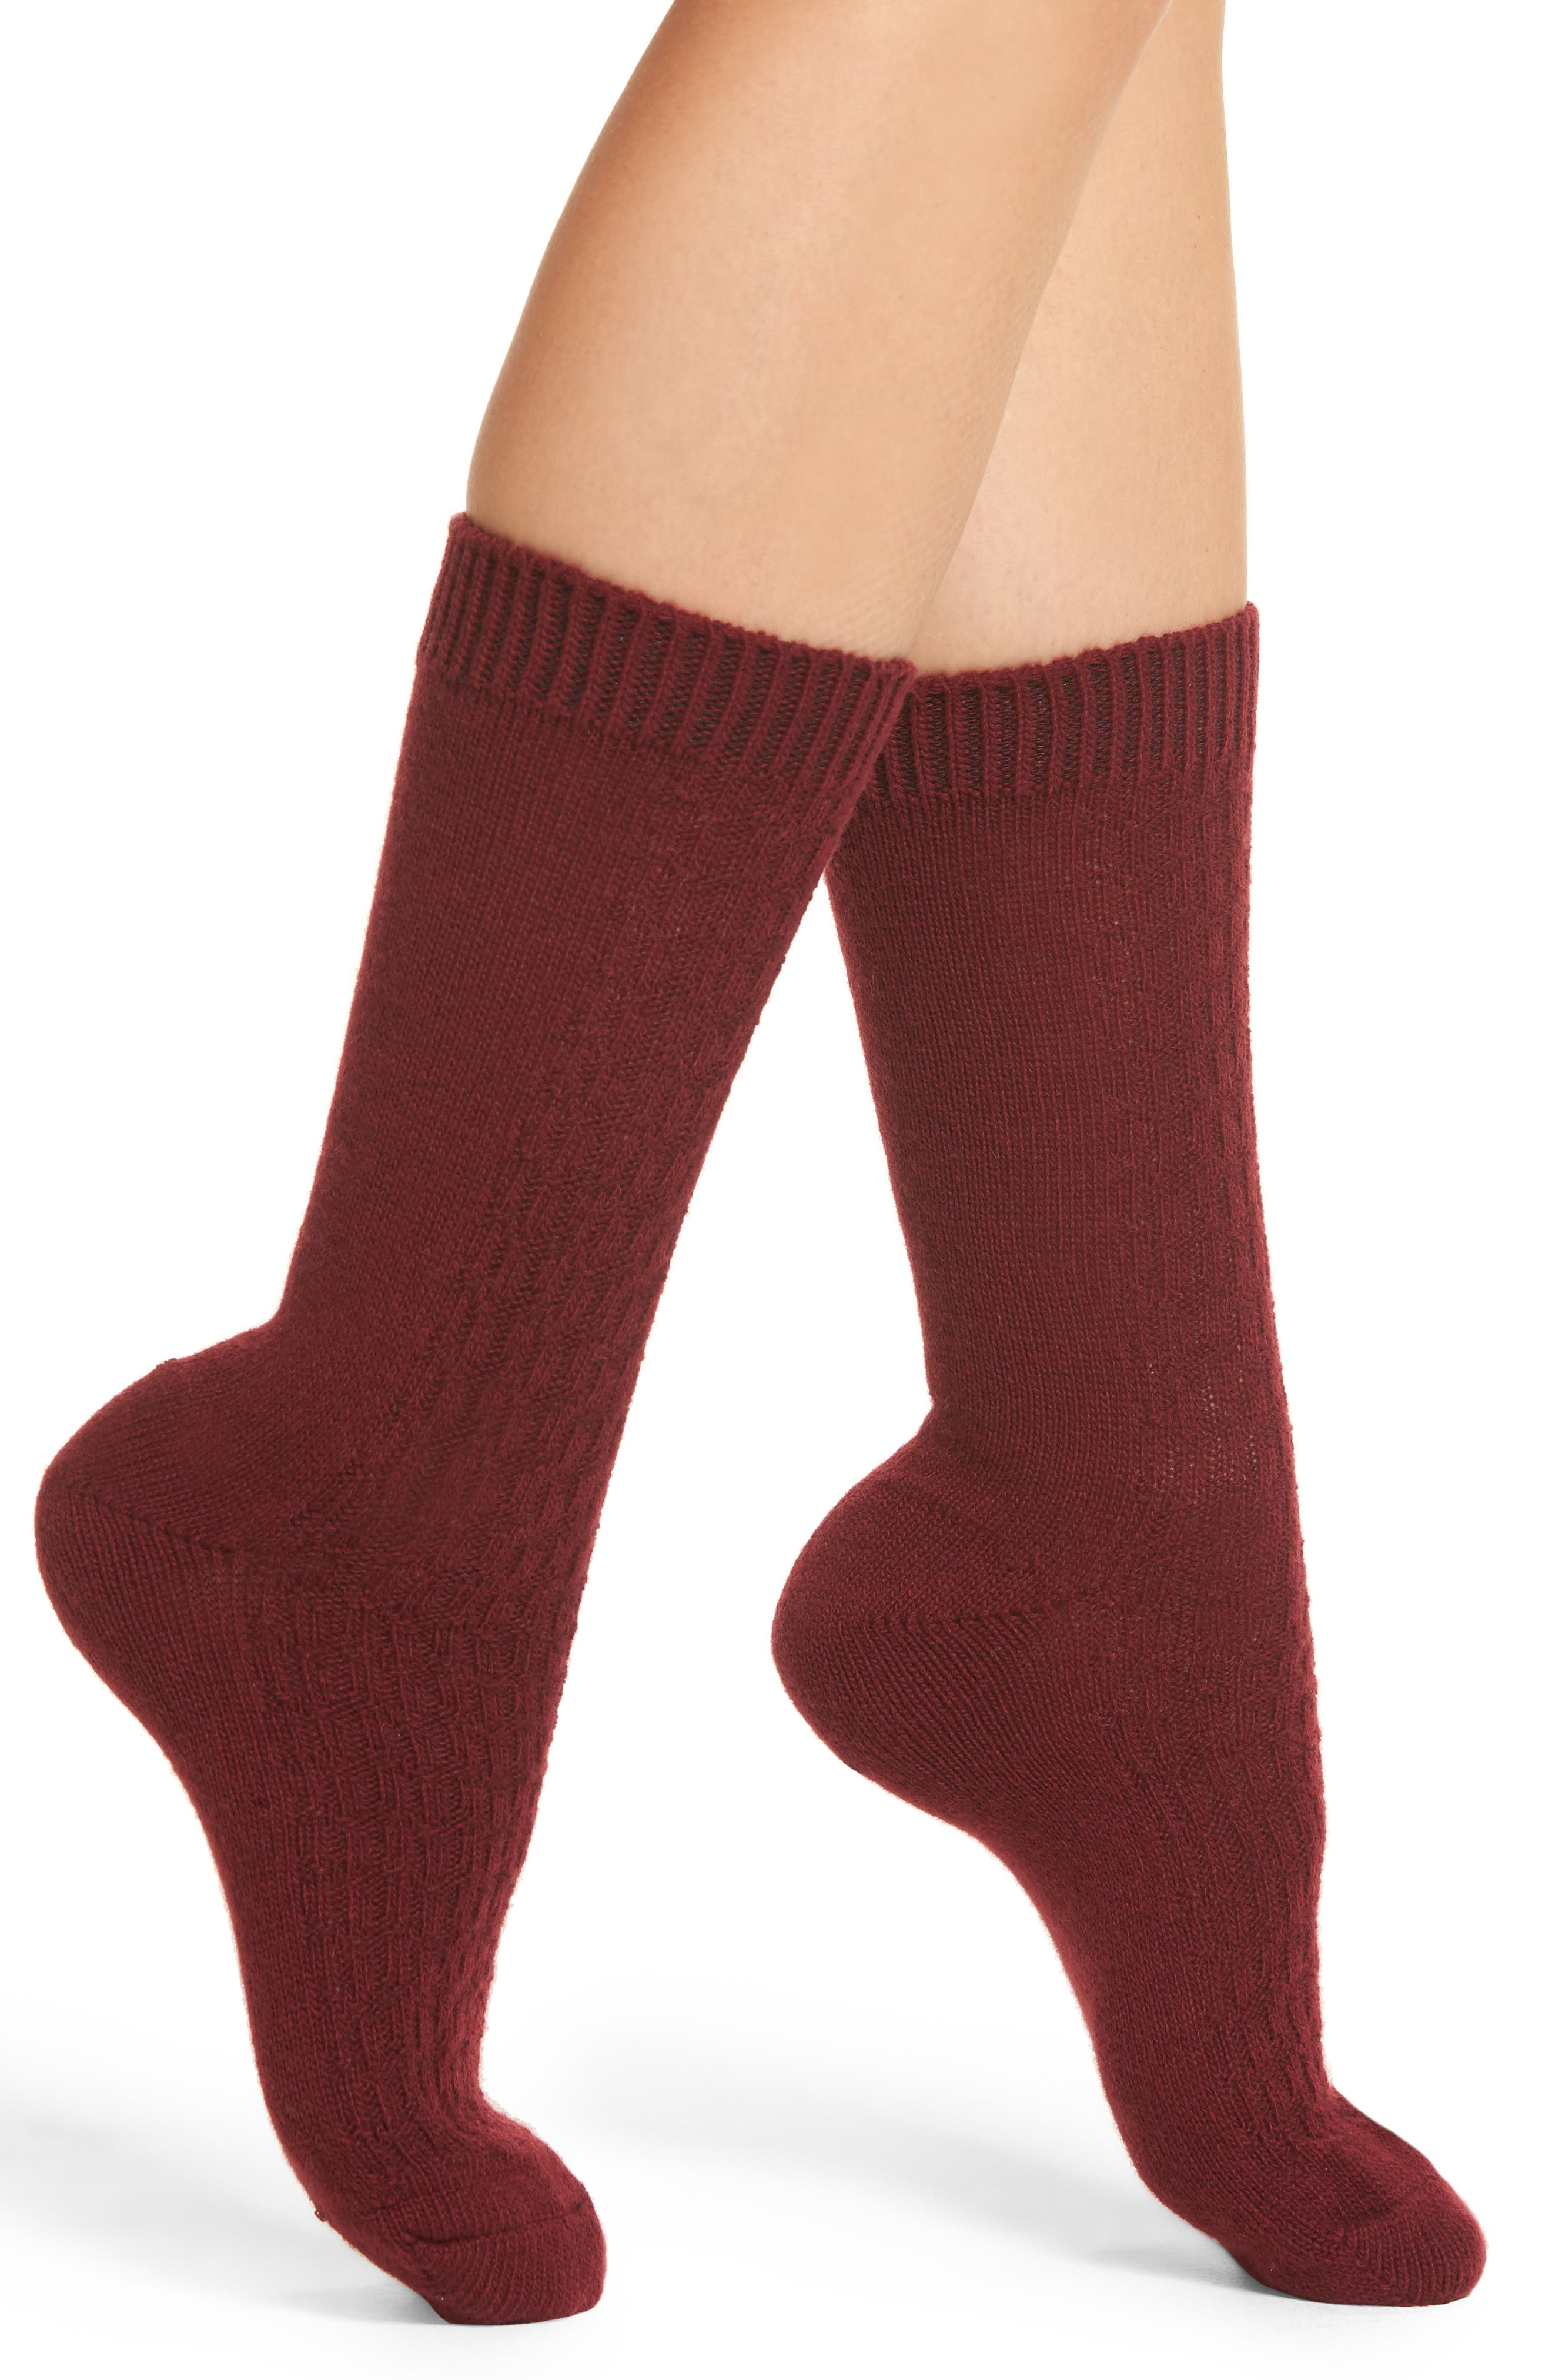 Nordstrom Luxe Baby Cable Knit Crew Socks